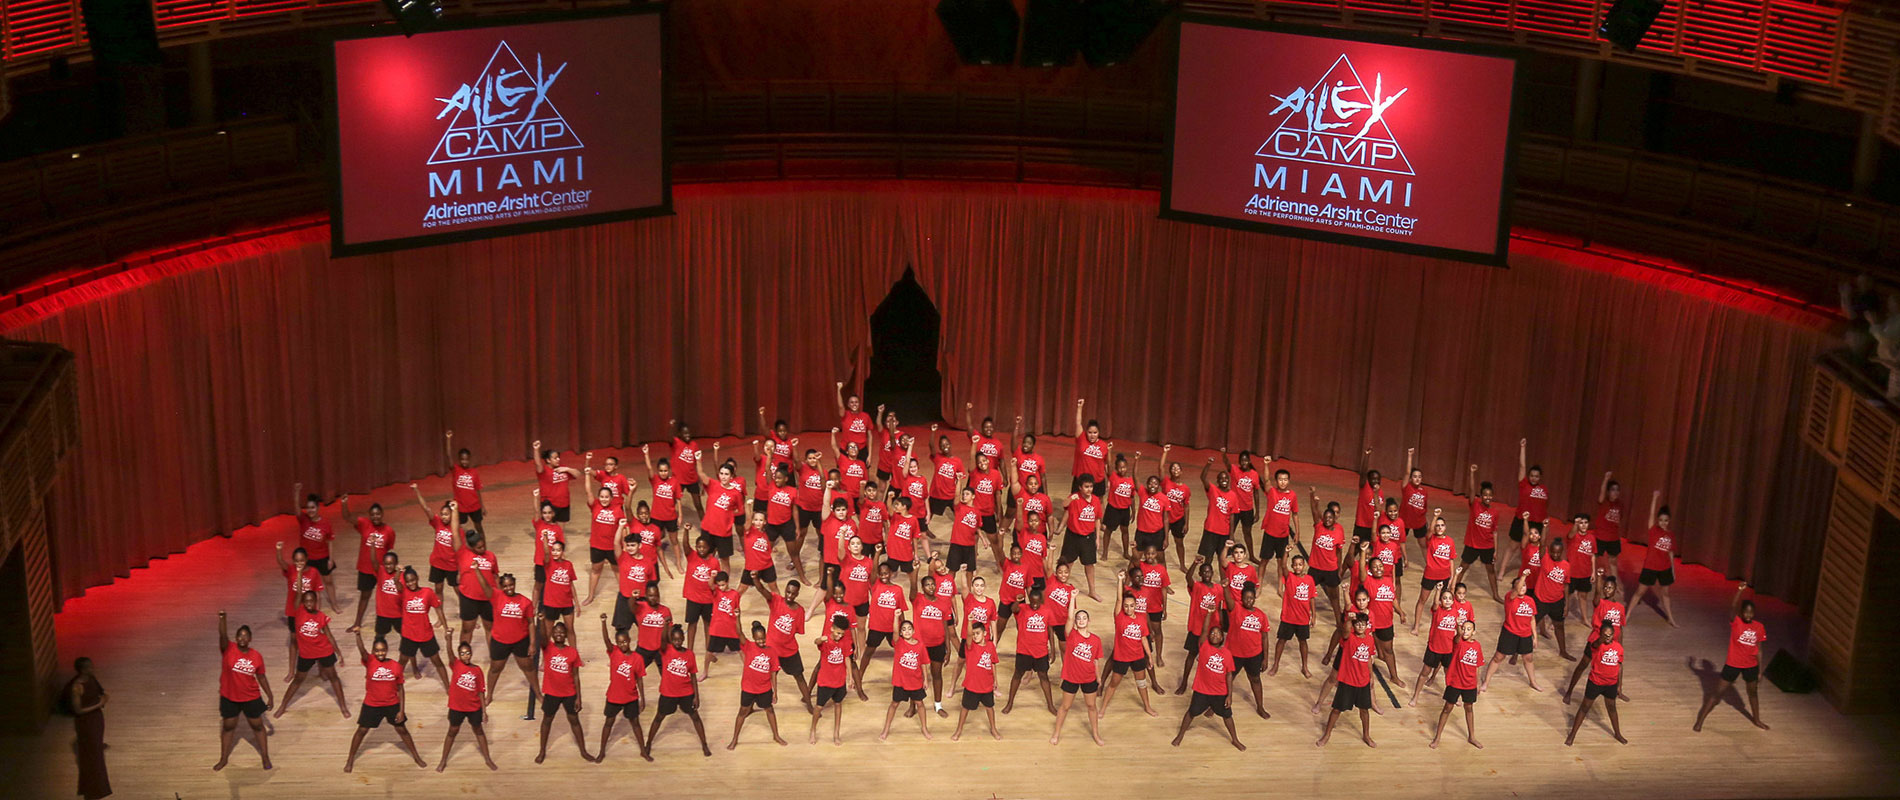 Genesis Motor America Announces A $250,000 Grant To The Adrienne Arsht Center For Performing Arts Of Miami-Dade County To Support Arts Education